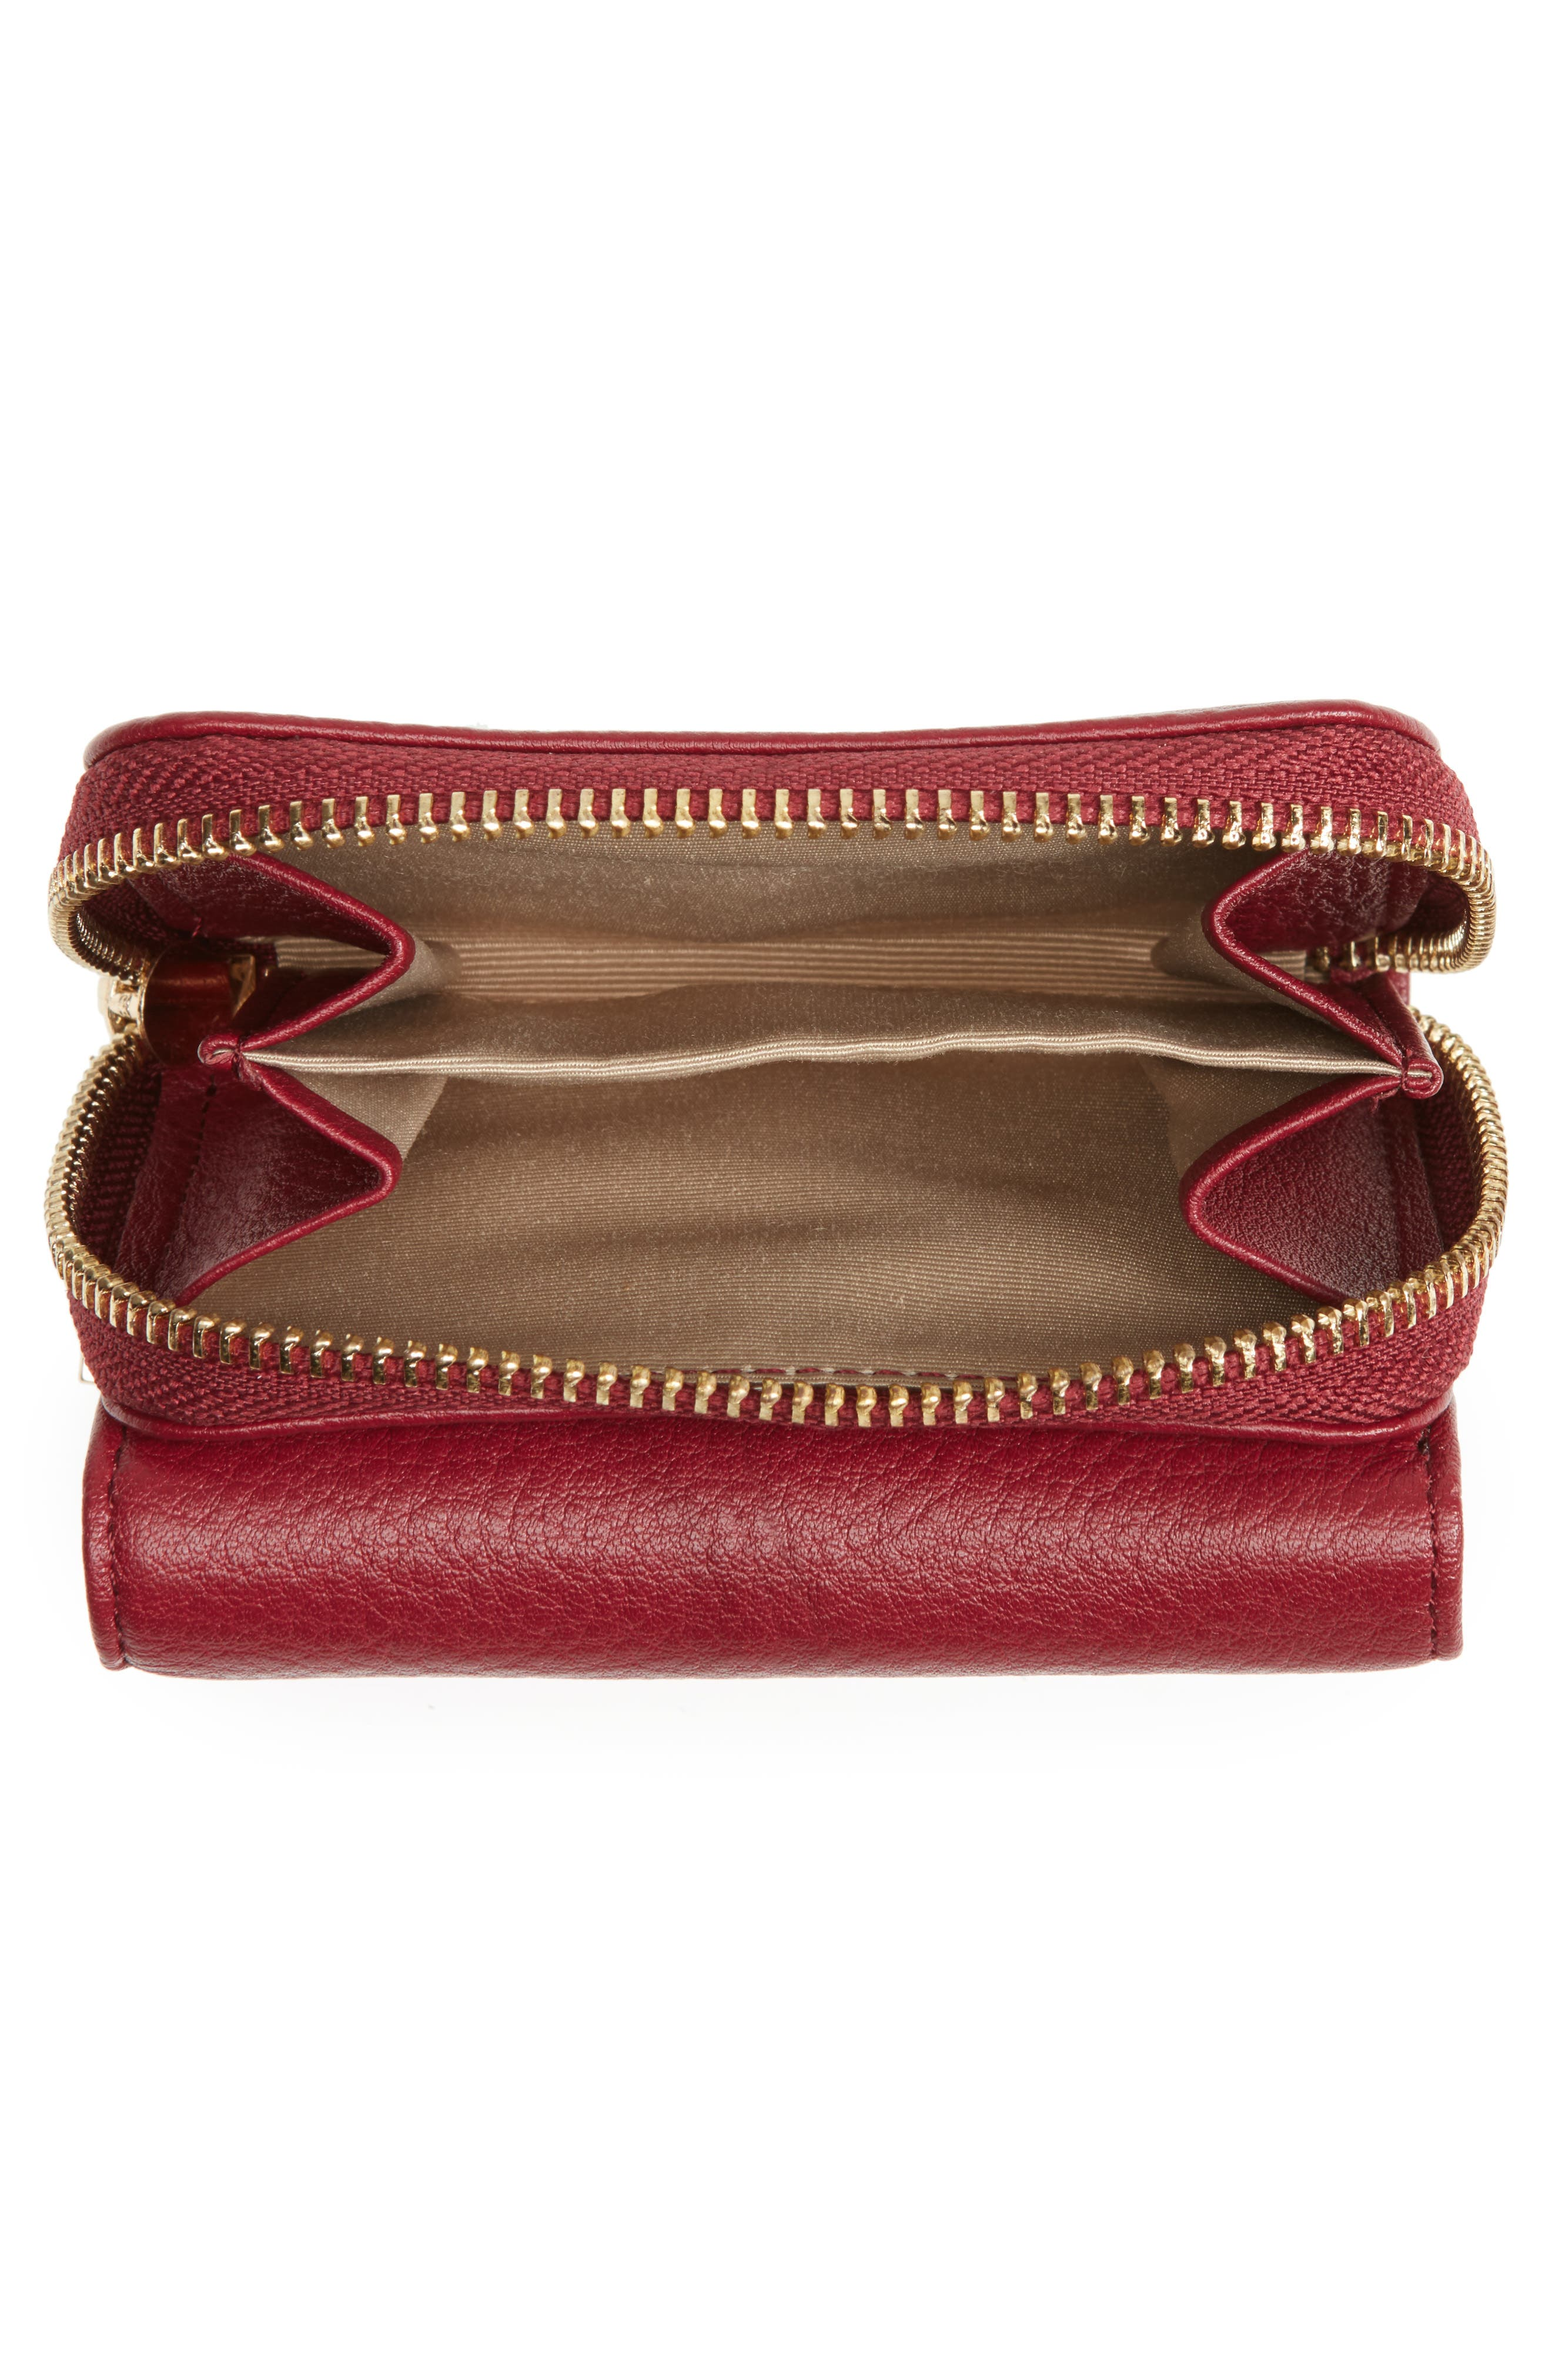 Céline Dion Small Adagio Leather Wallet,                             Alternate thumbnail 3, color,                             Dark Red